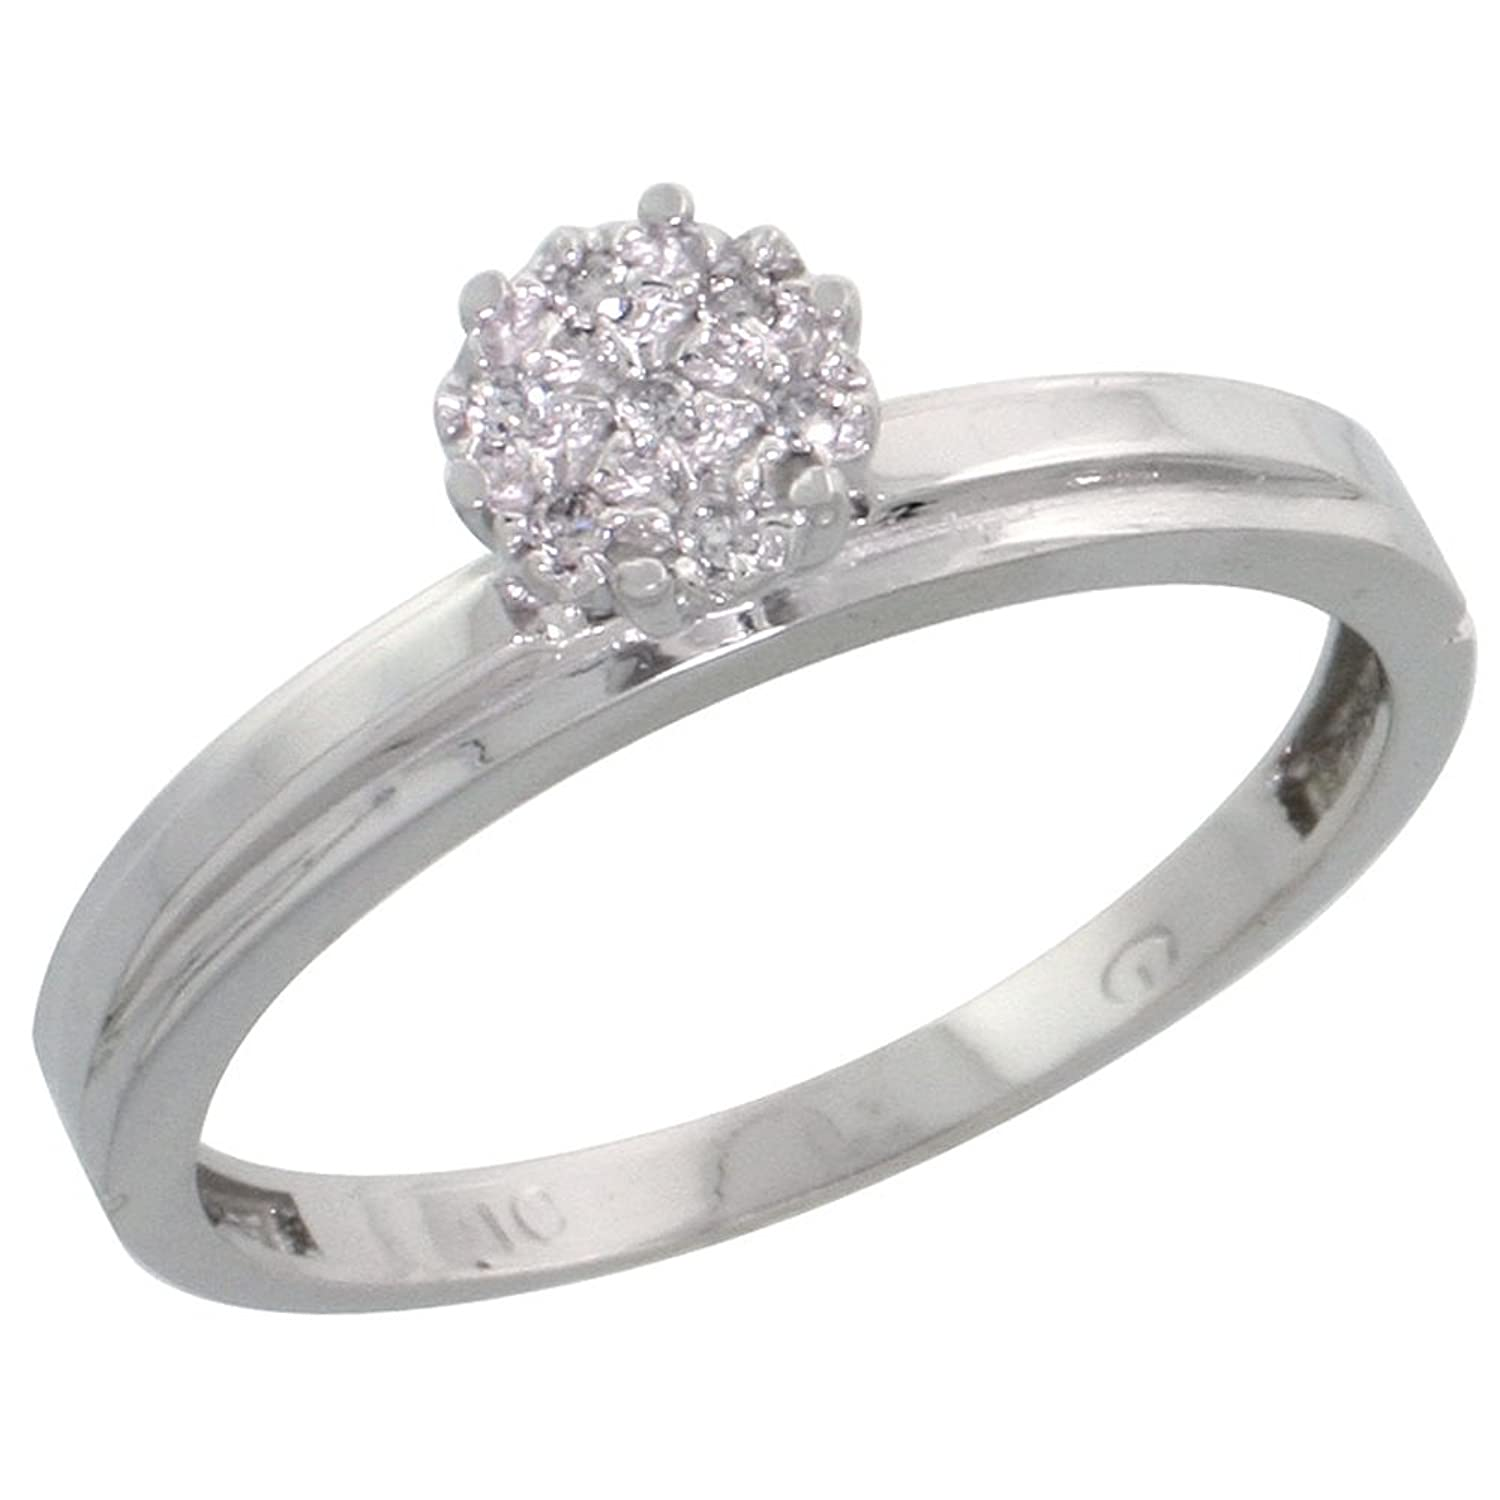 10k White Gold Diamond Engagement Ring 0.05 cttw Brilliant Cut, 1/8 inch 3mm wide